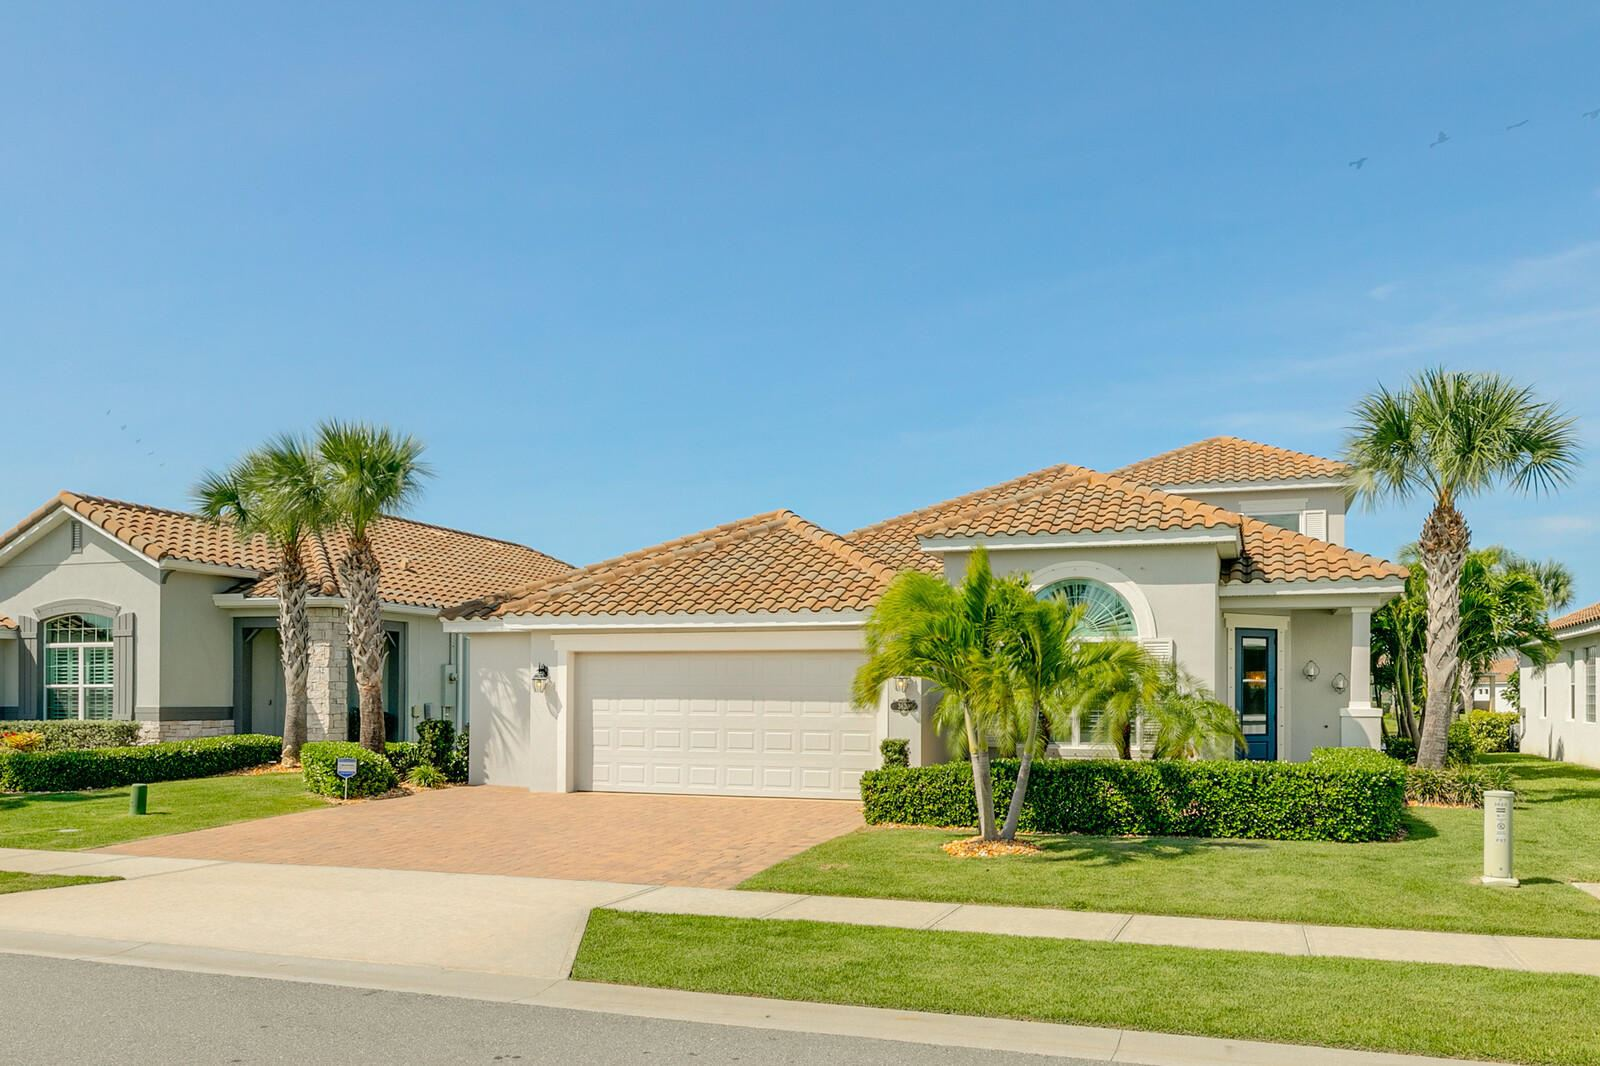 3620 Poseidon Way, Indialantic, FL 32903 - #: 903705